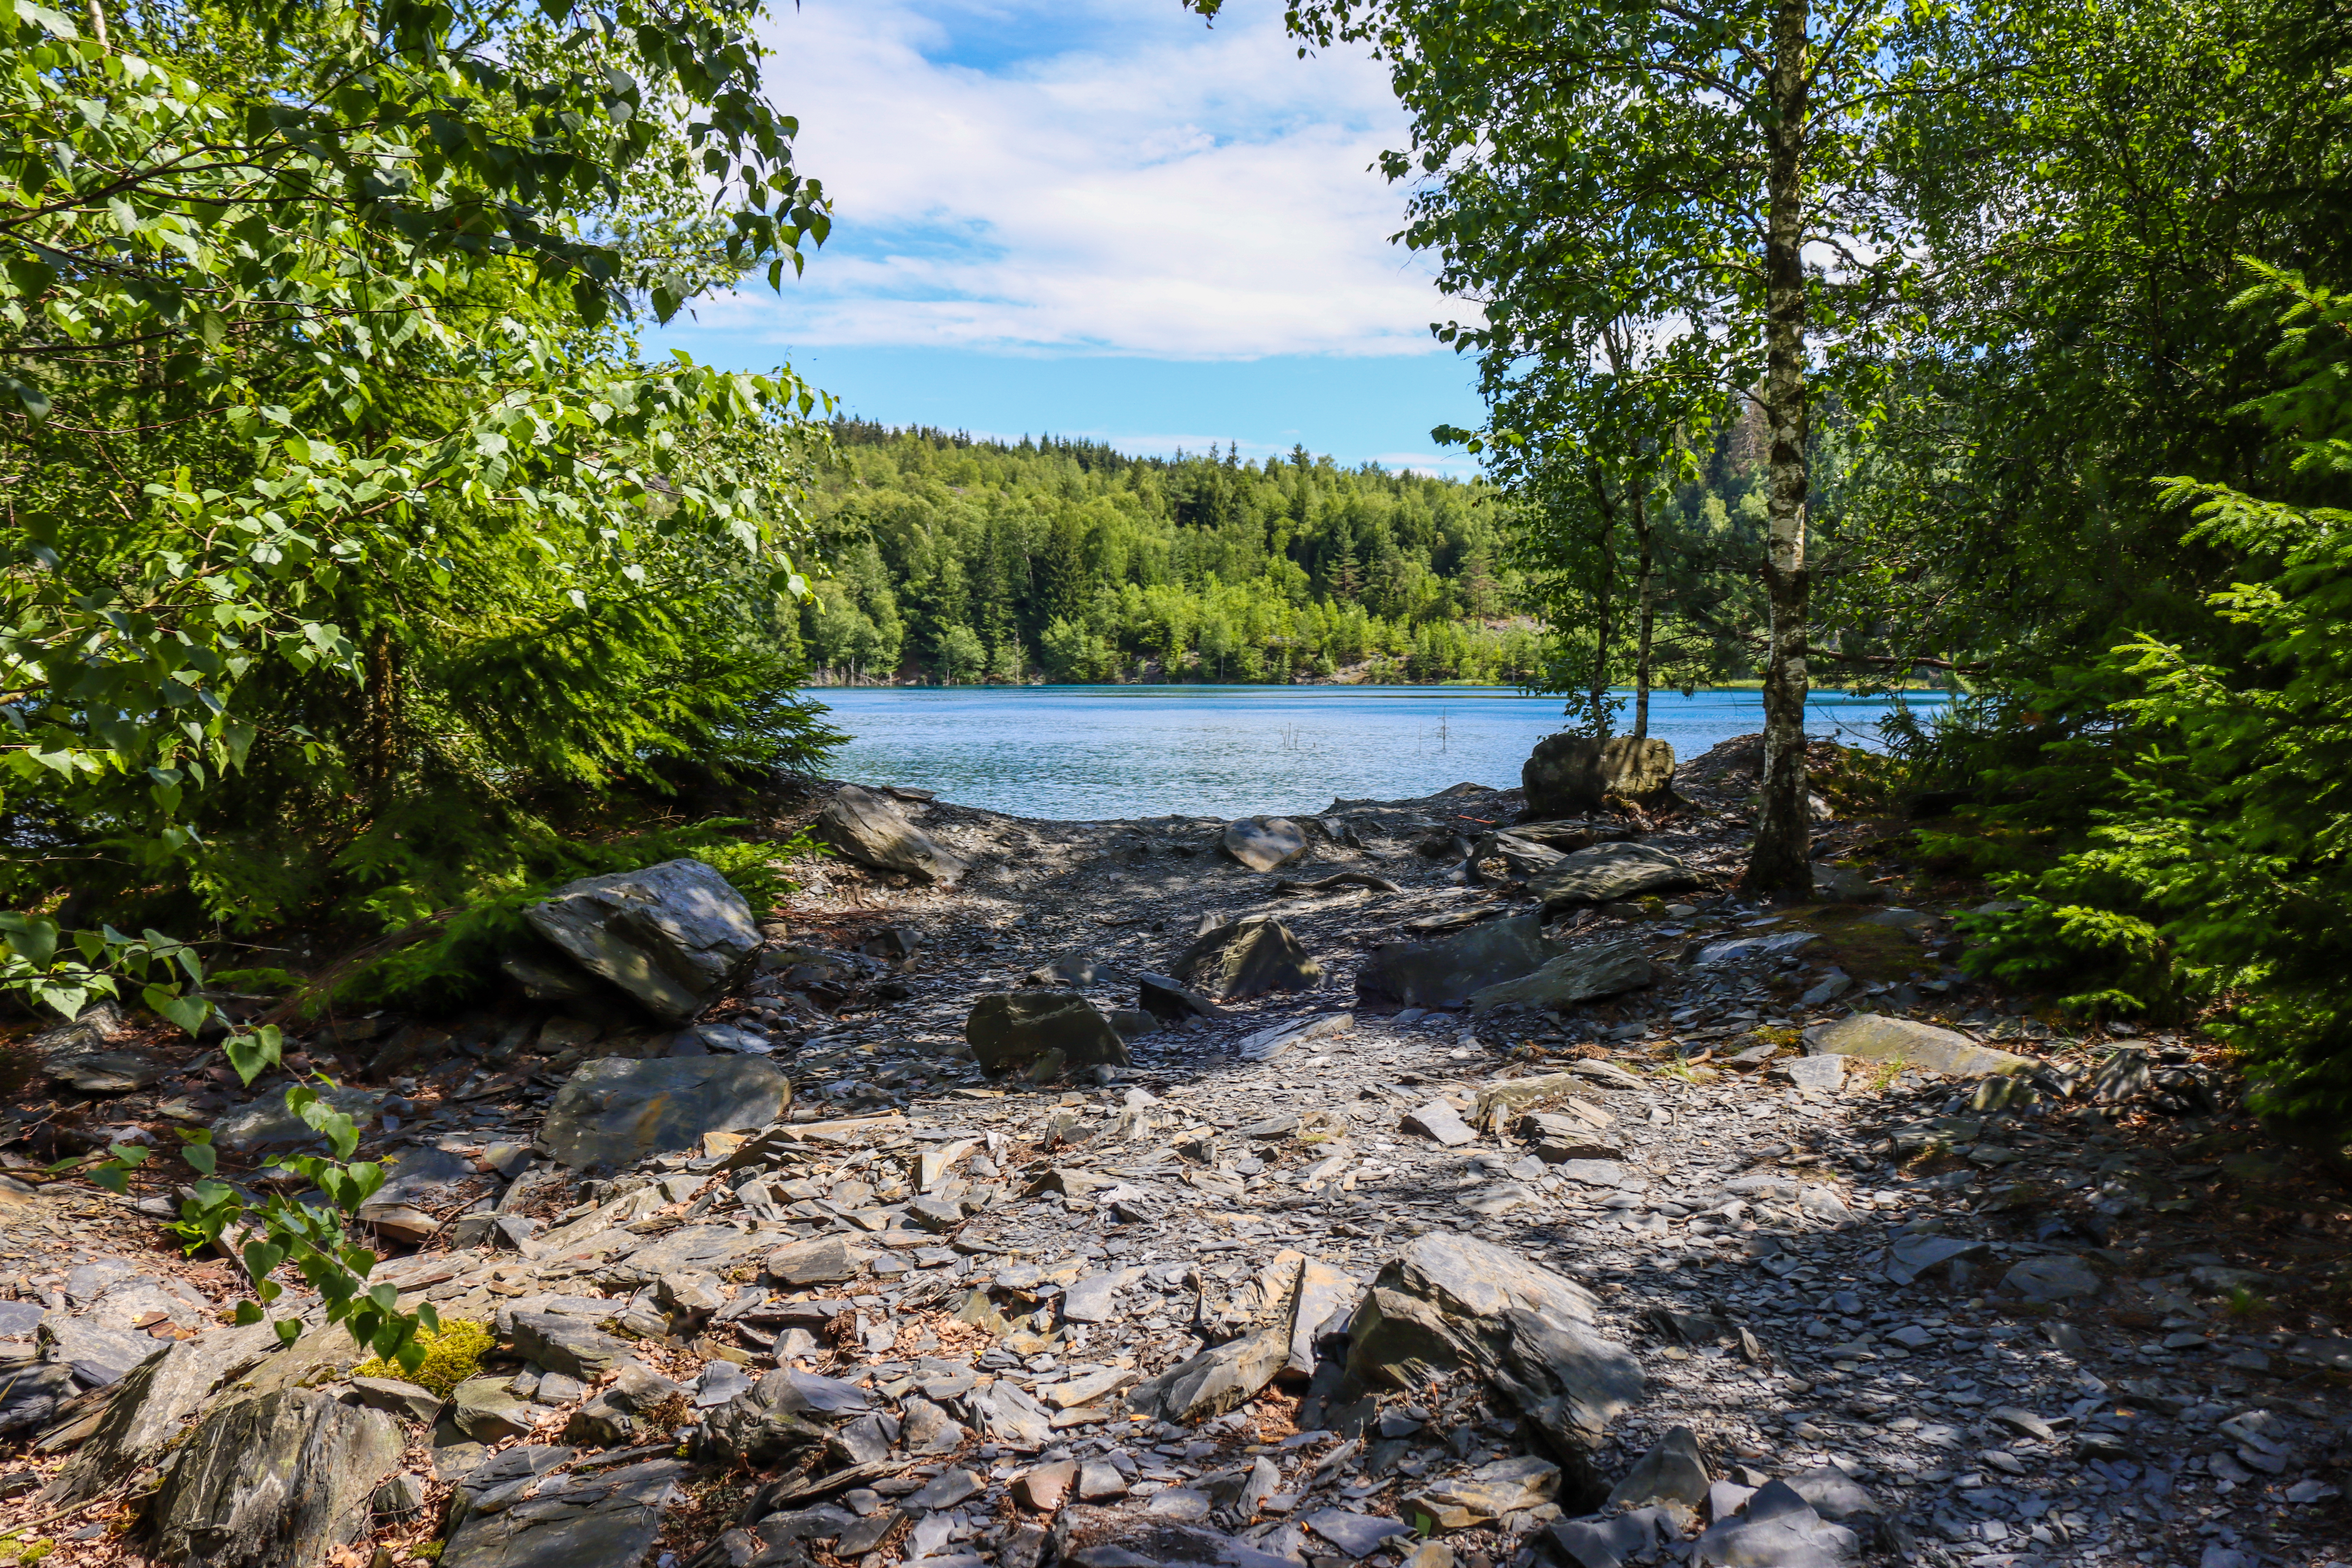 111421 download wallpaper Nature, Rivers, Trees, Stones, Forest, Branches screensavers and pictures for free